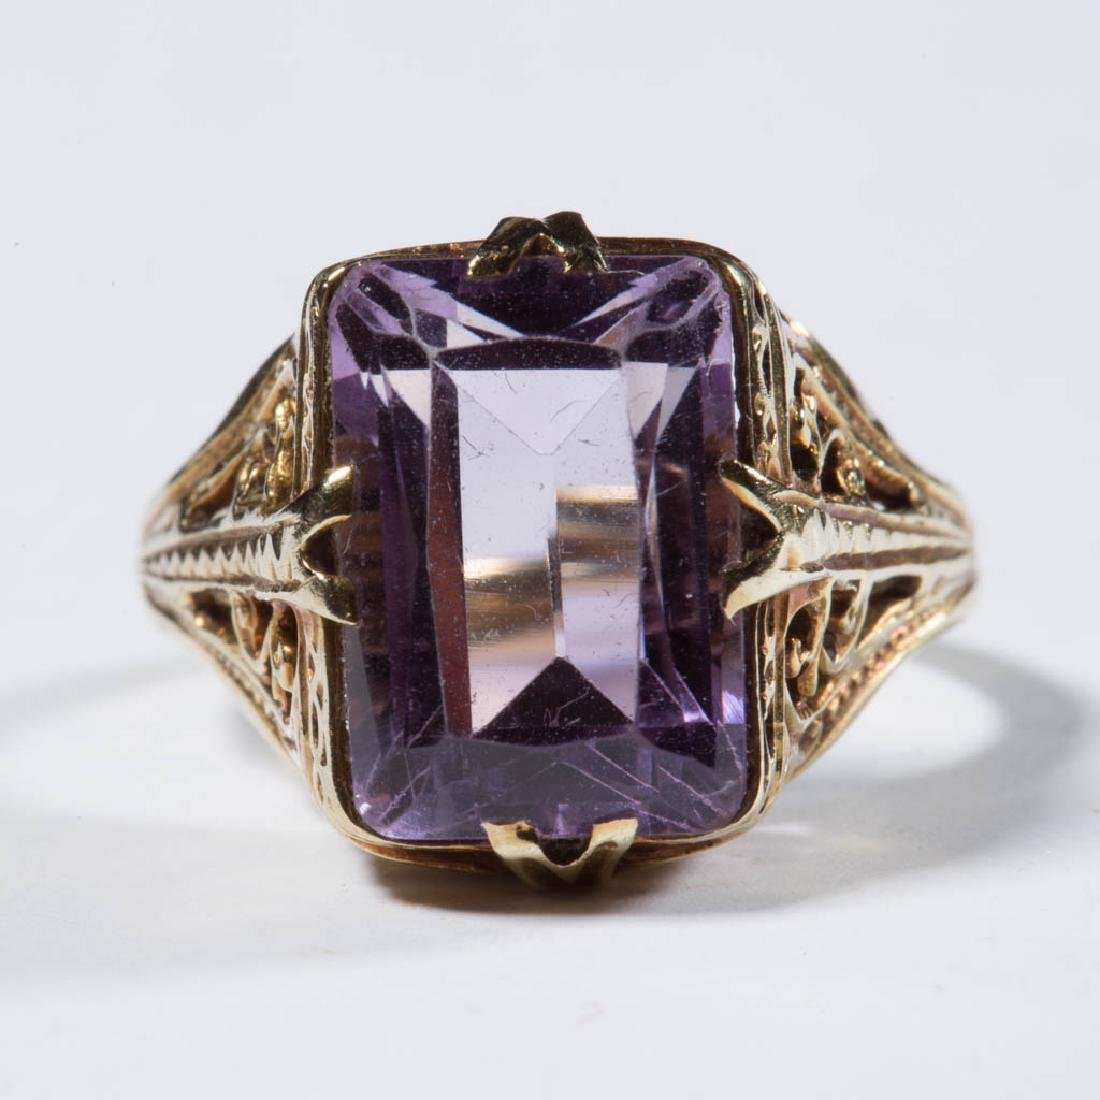 ANTIQUE 14K GOLD AND AMETHYST LADY'S RING